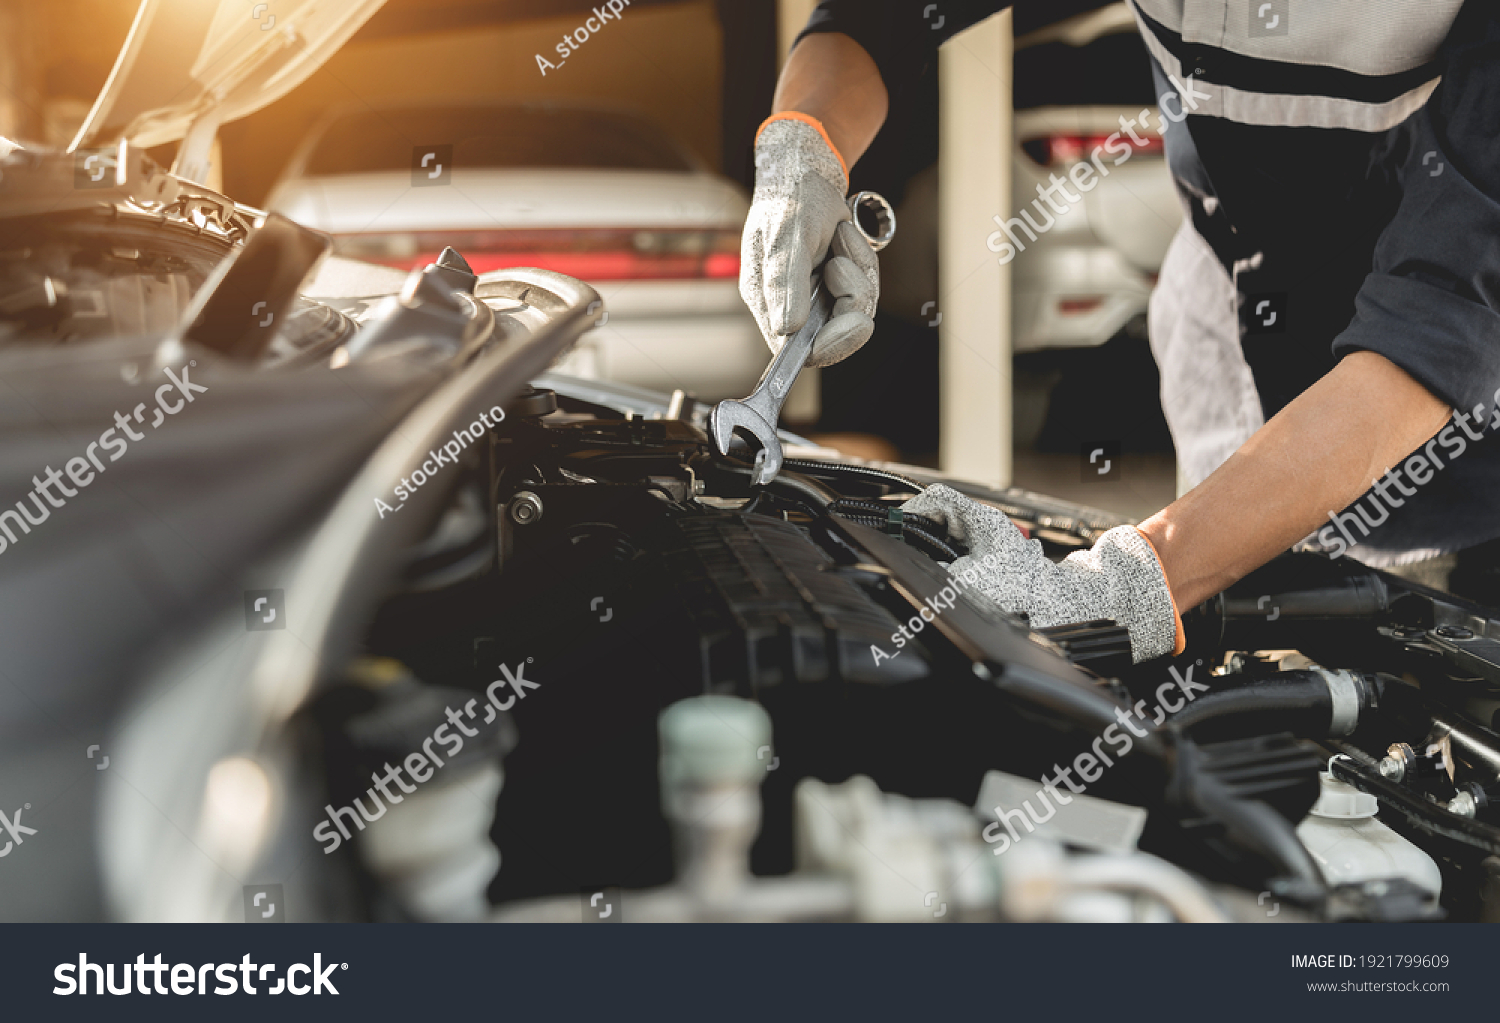 Automobile mechanic repairman hands repairing a car engine automotive workshop with a wrench, car service and maintenance,Repair service. #1921799609